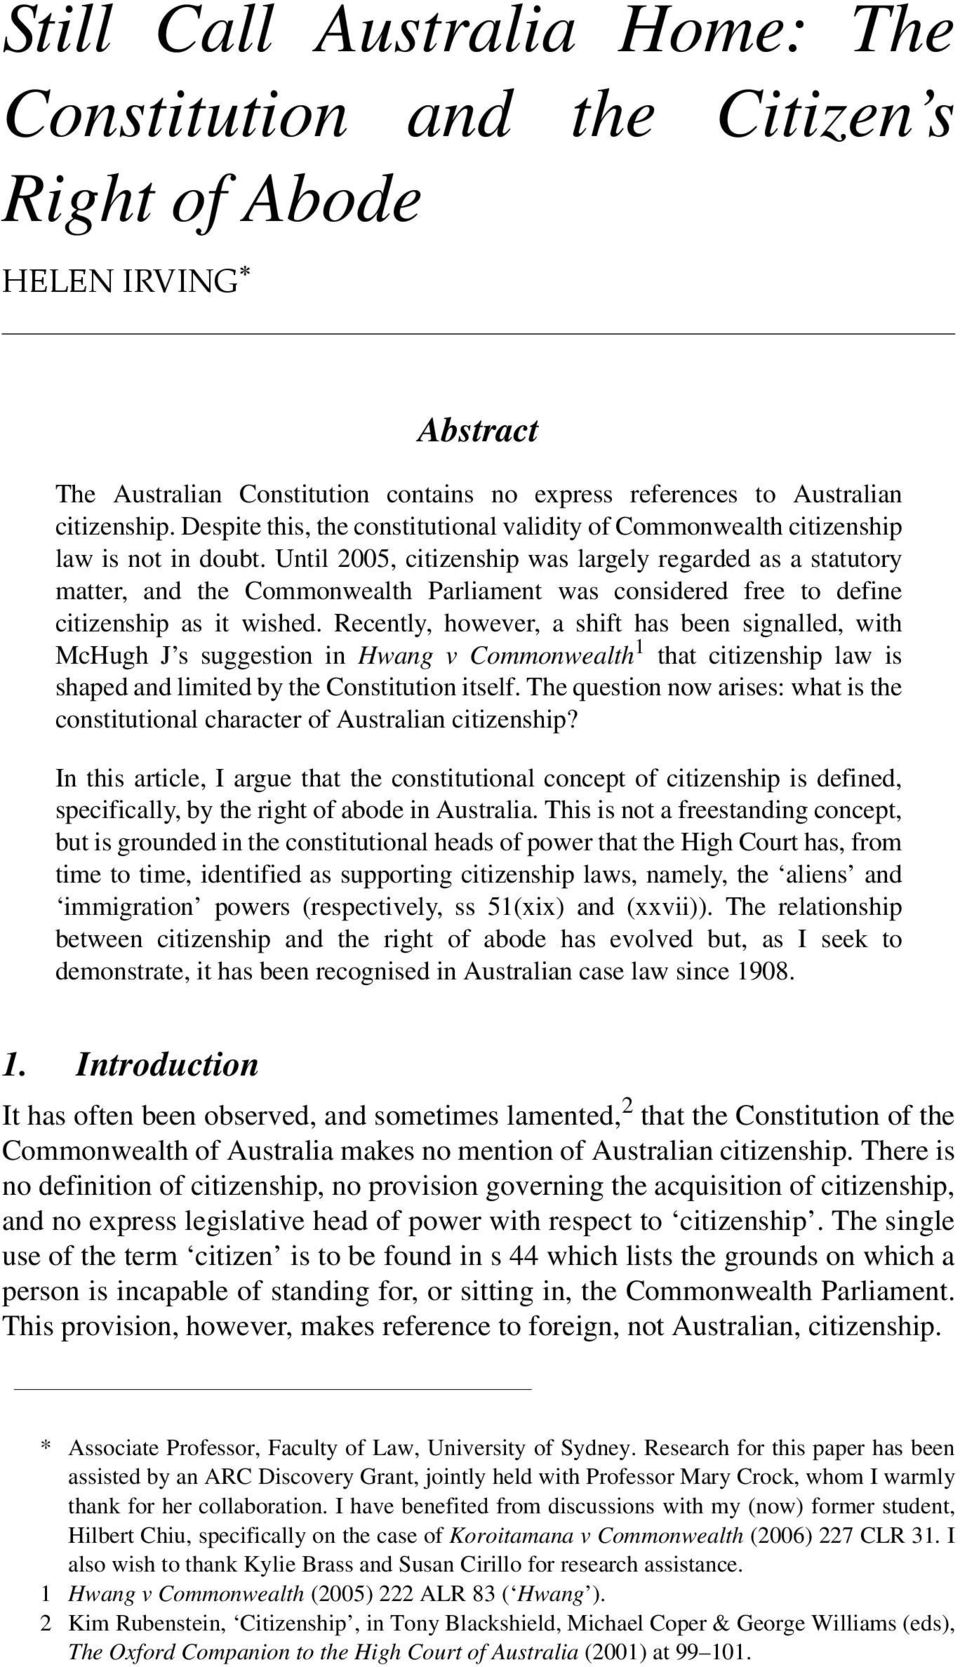 Until 2005, citizenship was largely regarded as a statutory matter, and the Commonwealth Parliament was considered free to define citizenship as it wished.